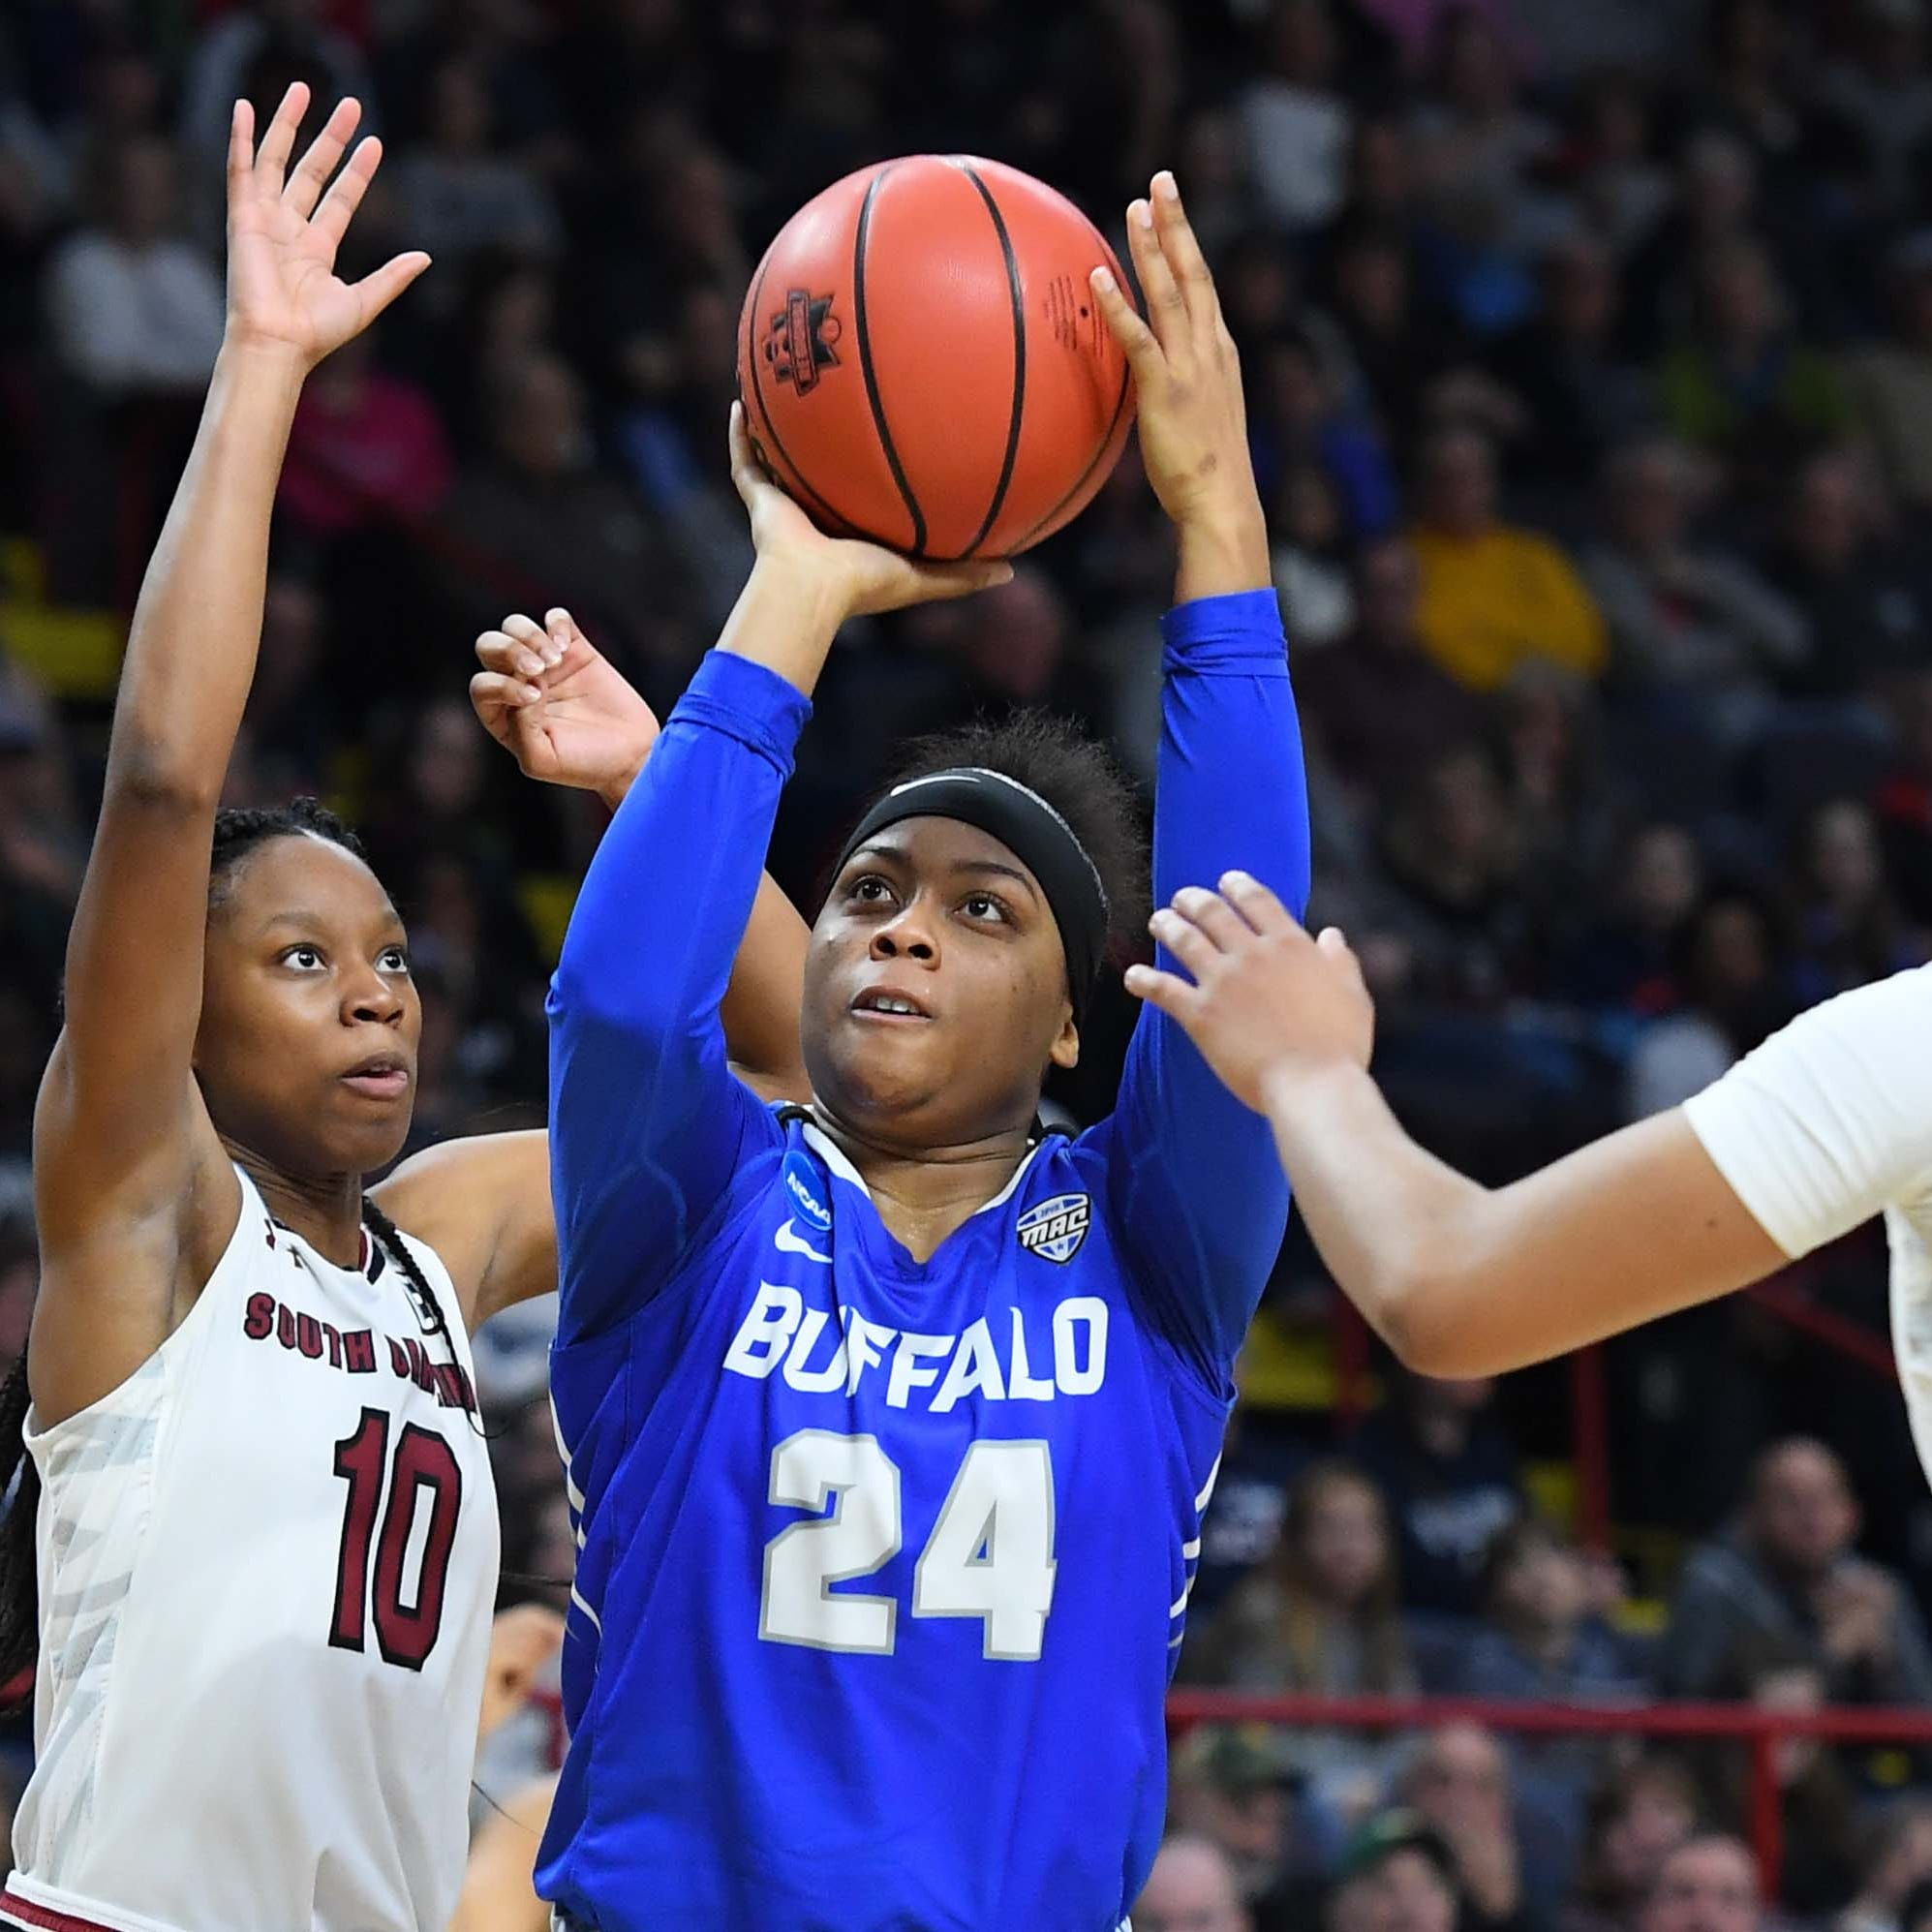 The WNBA Draft is Wednesday night, which team will select Gates Chili's Cierra Dillard?